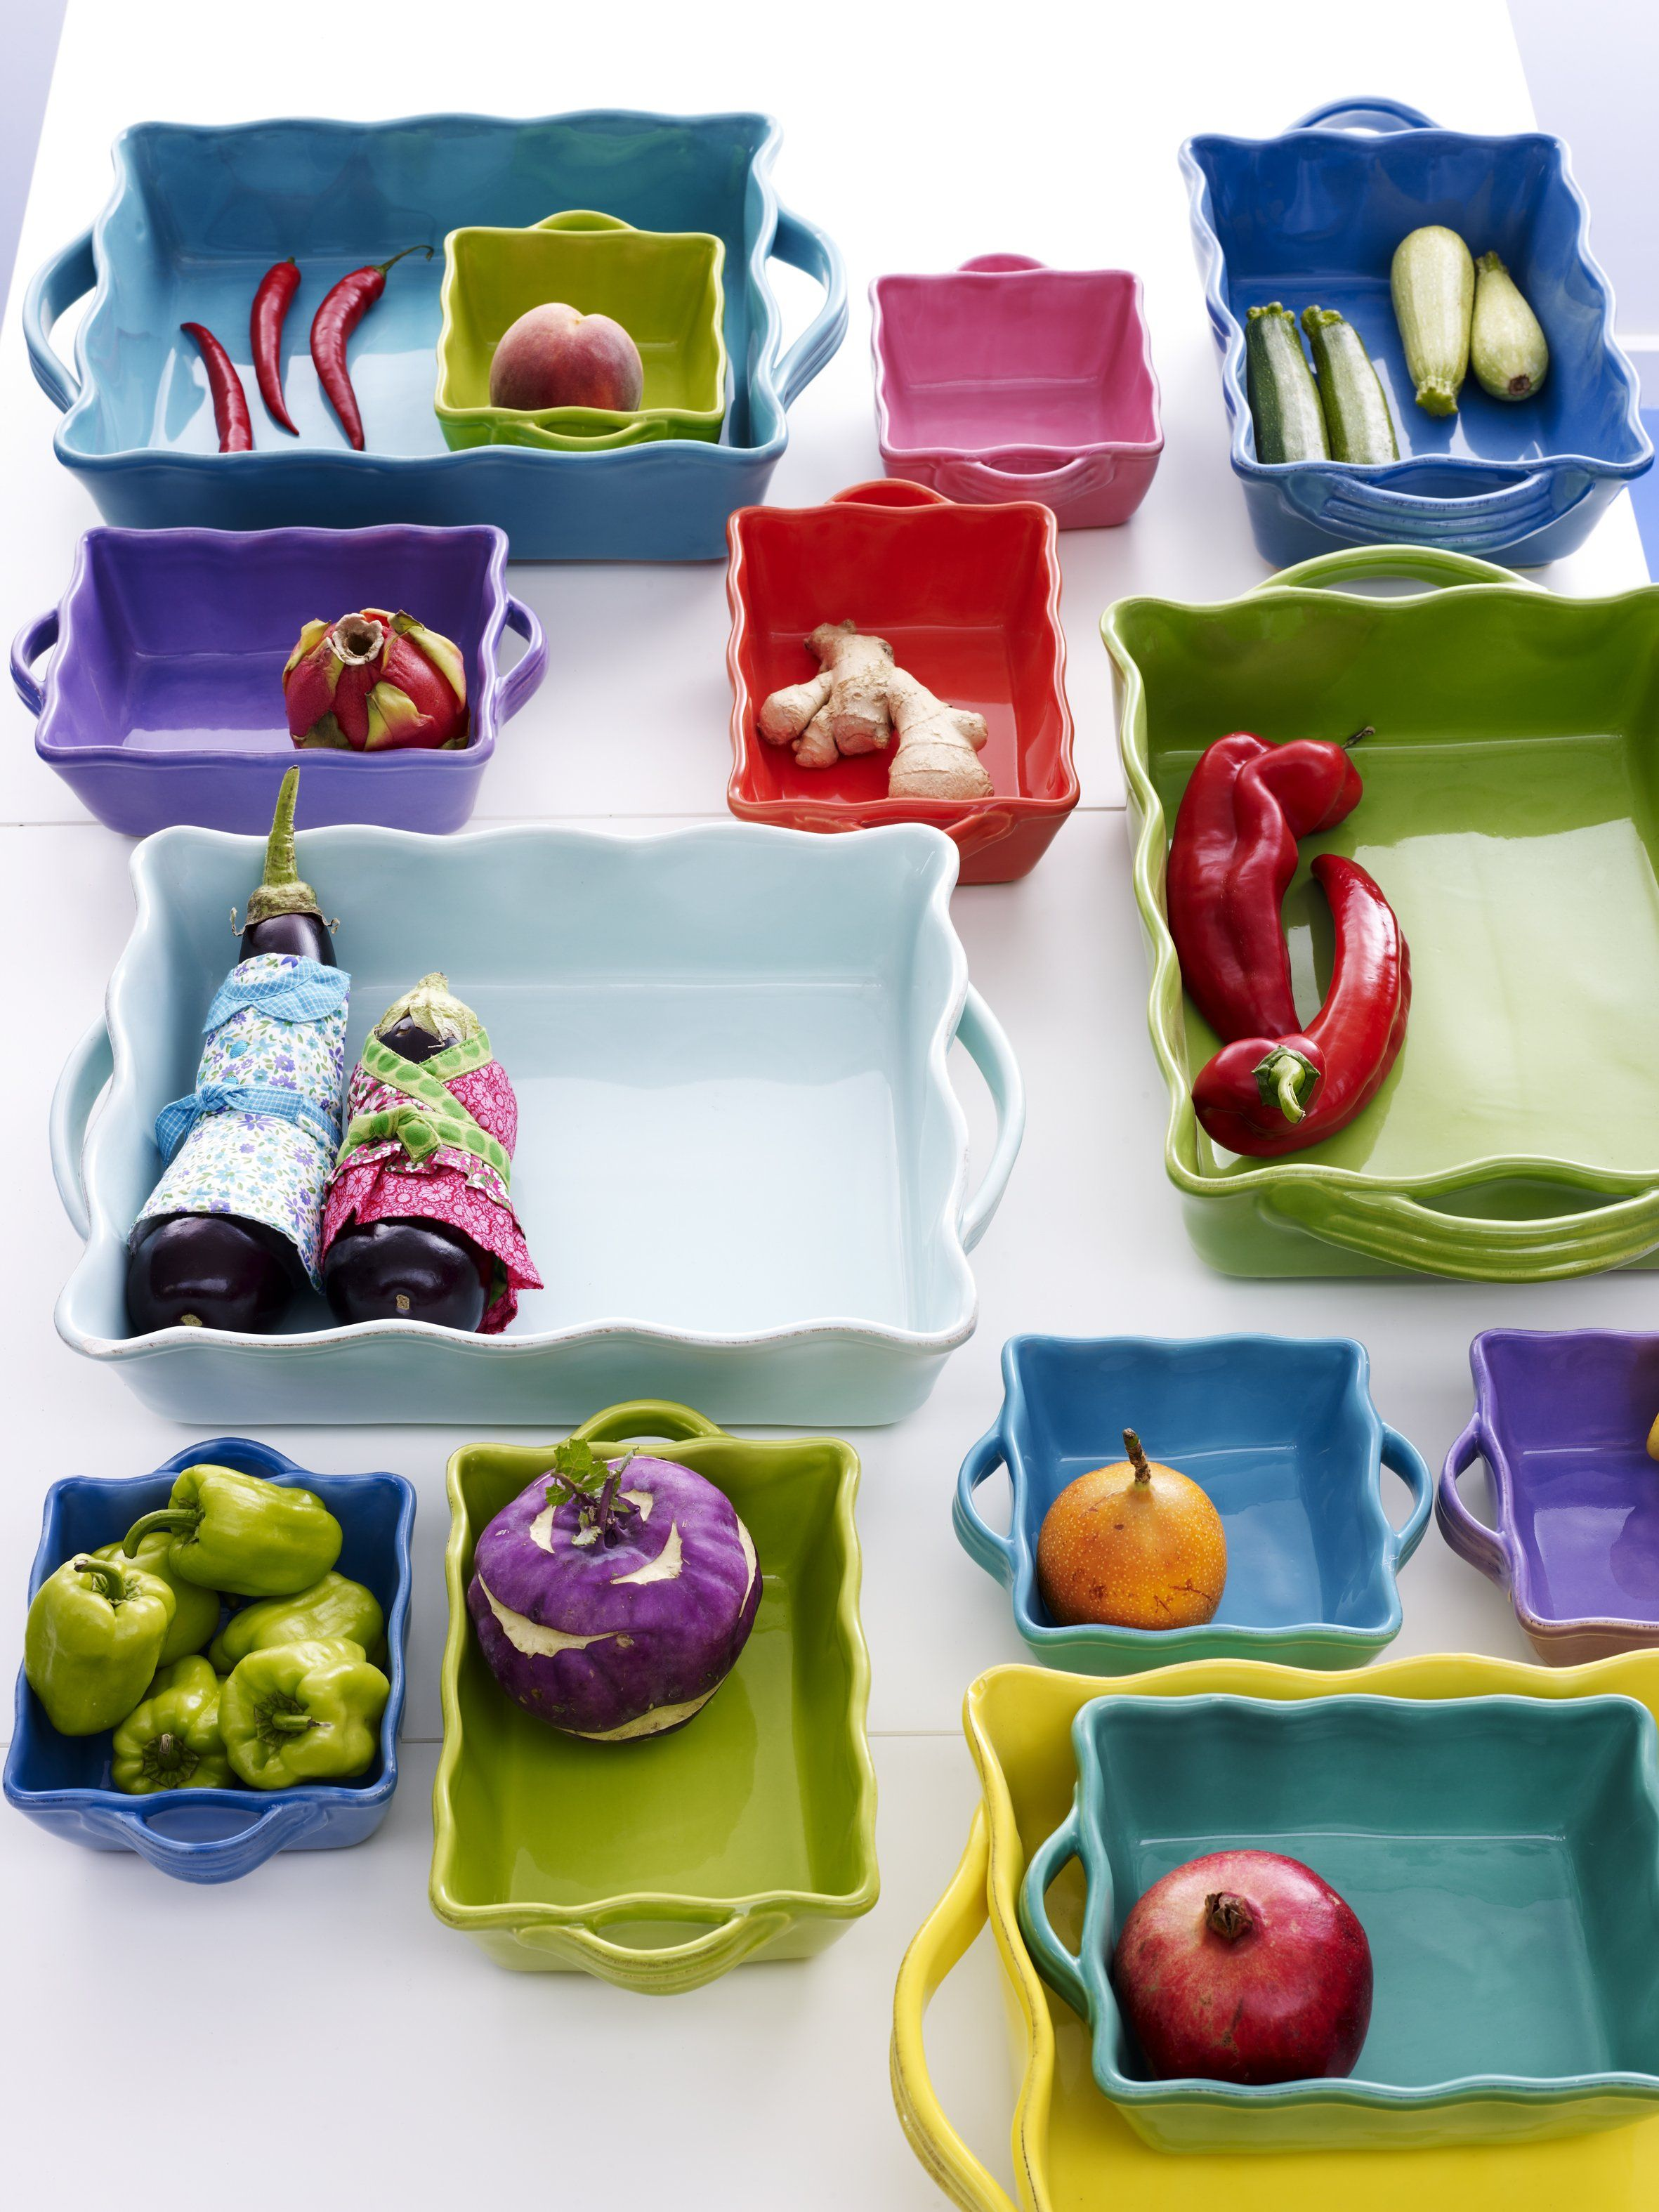 Colorful Oven Dishes from the RICE Italian Tableware Collection & Colorful Oven Dishes from the RICE Italian Tableware Collection ...